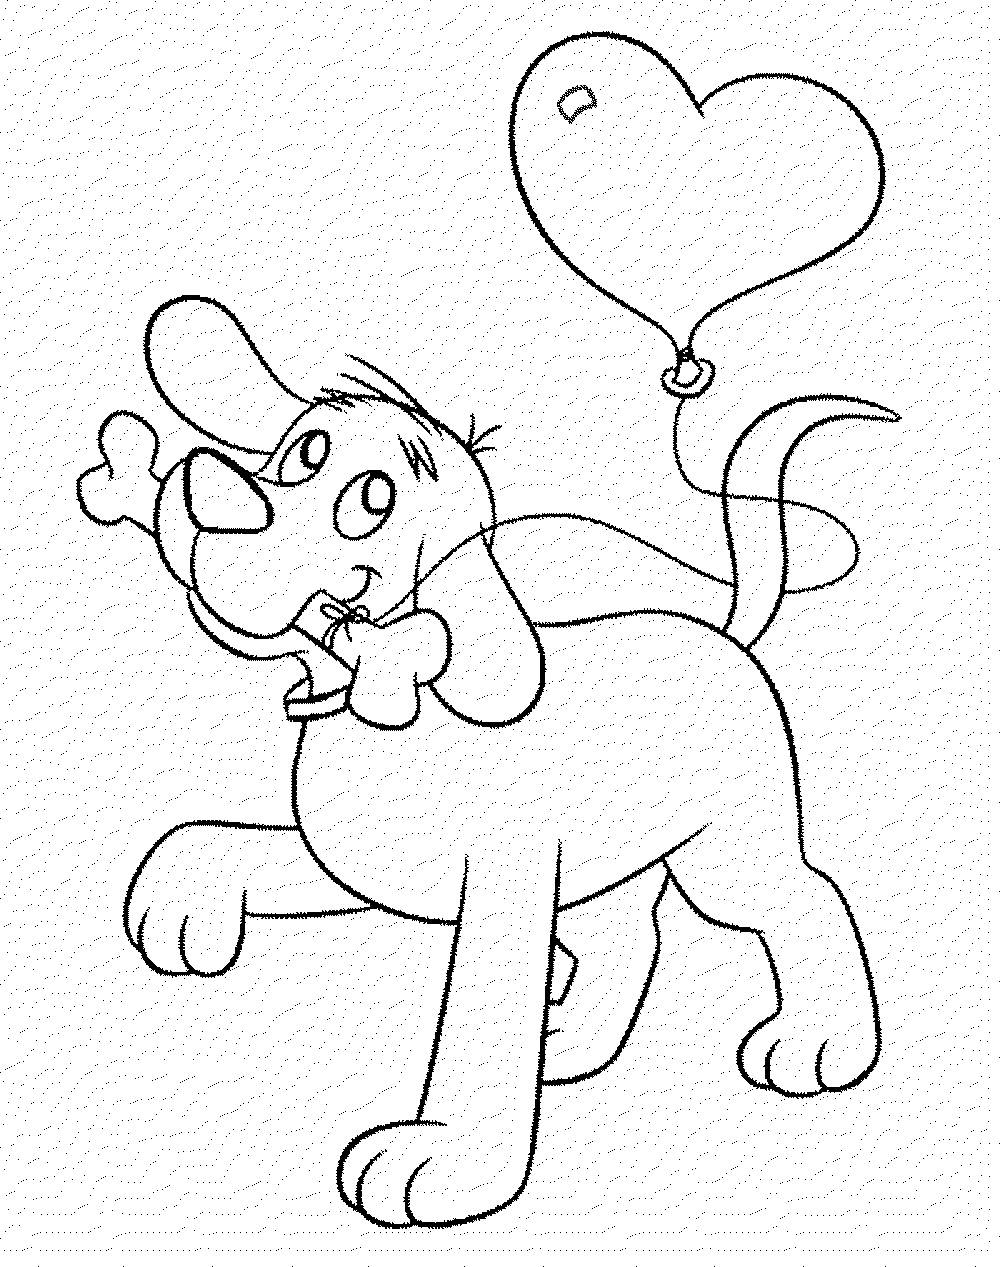 Employ Dog Coloring Pages For Your Children S Creative Time Dog Coloring Page Puppy Coloring Pages Coloring Pages [ 1267 x 1000 Pixel ]